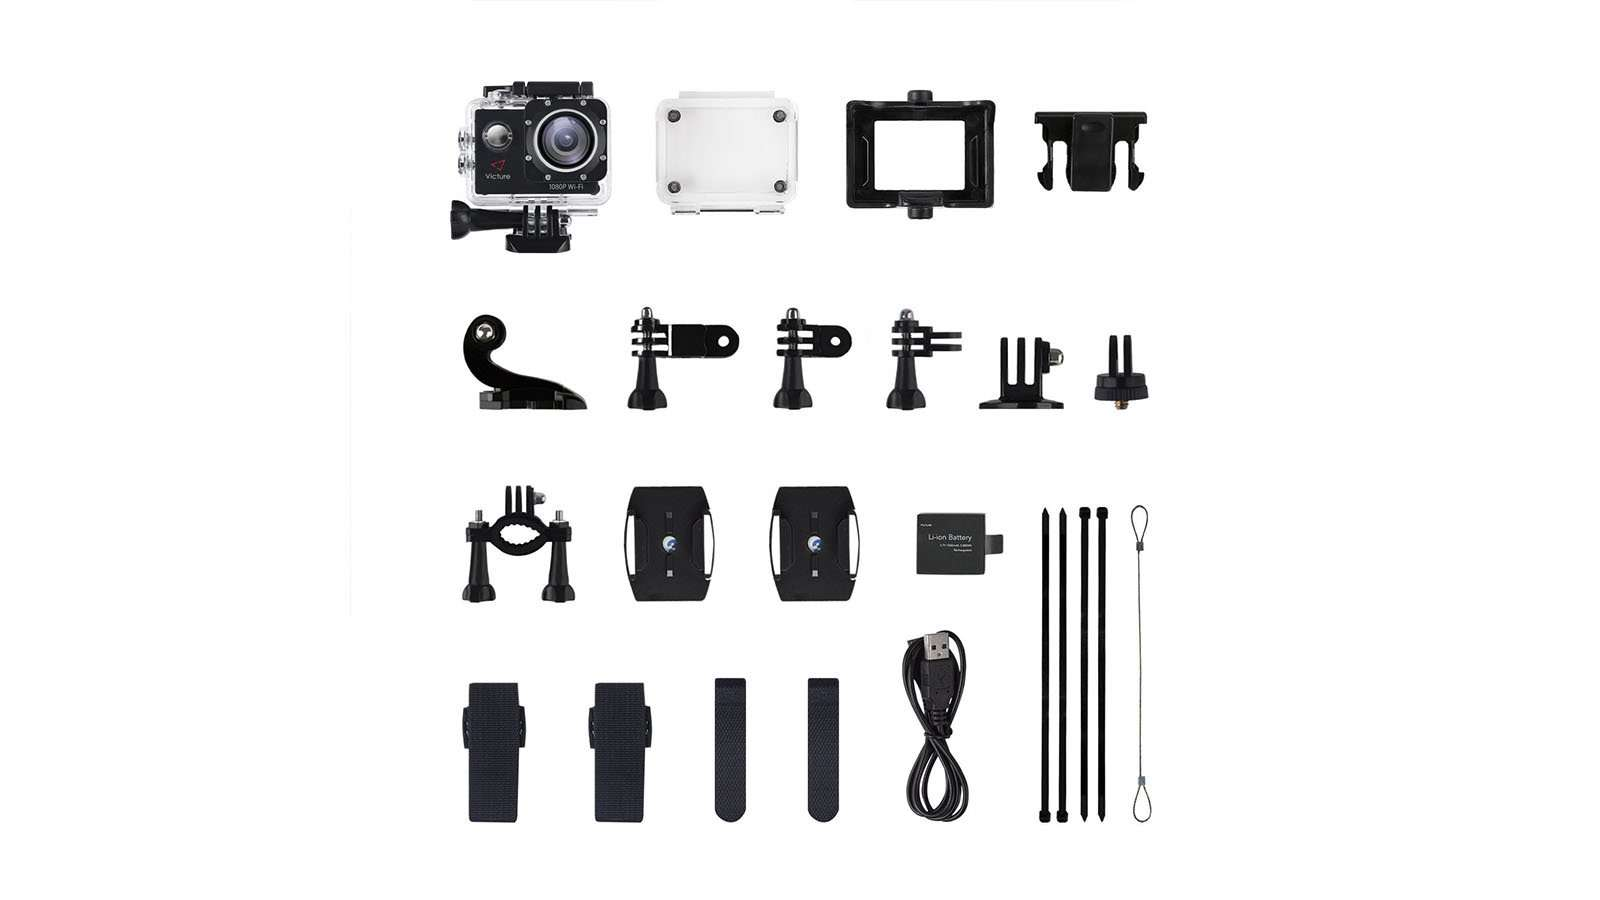 Victure Sports Action Camera 14MP review 3